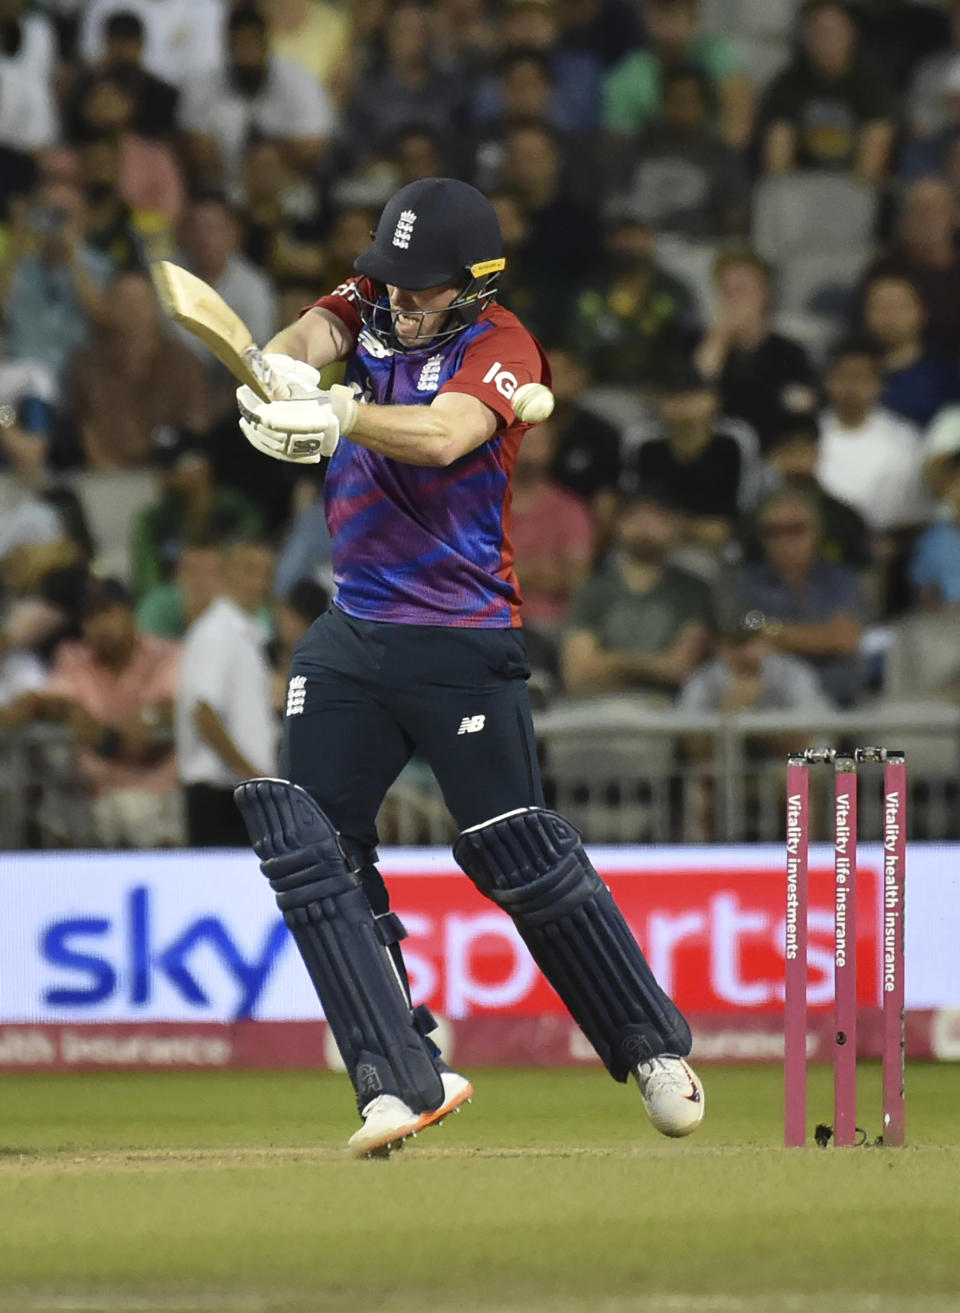 England captain Eoin Morgan bats during the third Twenty20 international cricket match between England and Pakistan at Old Trafford in Manchester, Tuesday, July 20, 2021. (AP Photo/Rui Vieira)